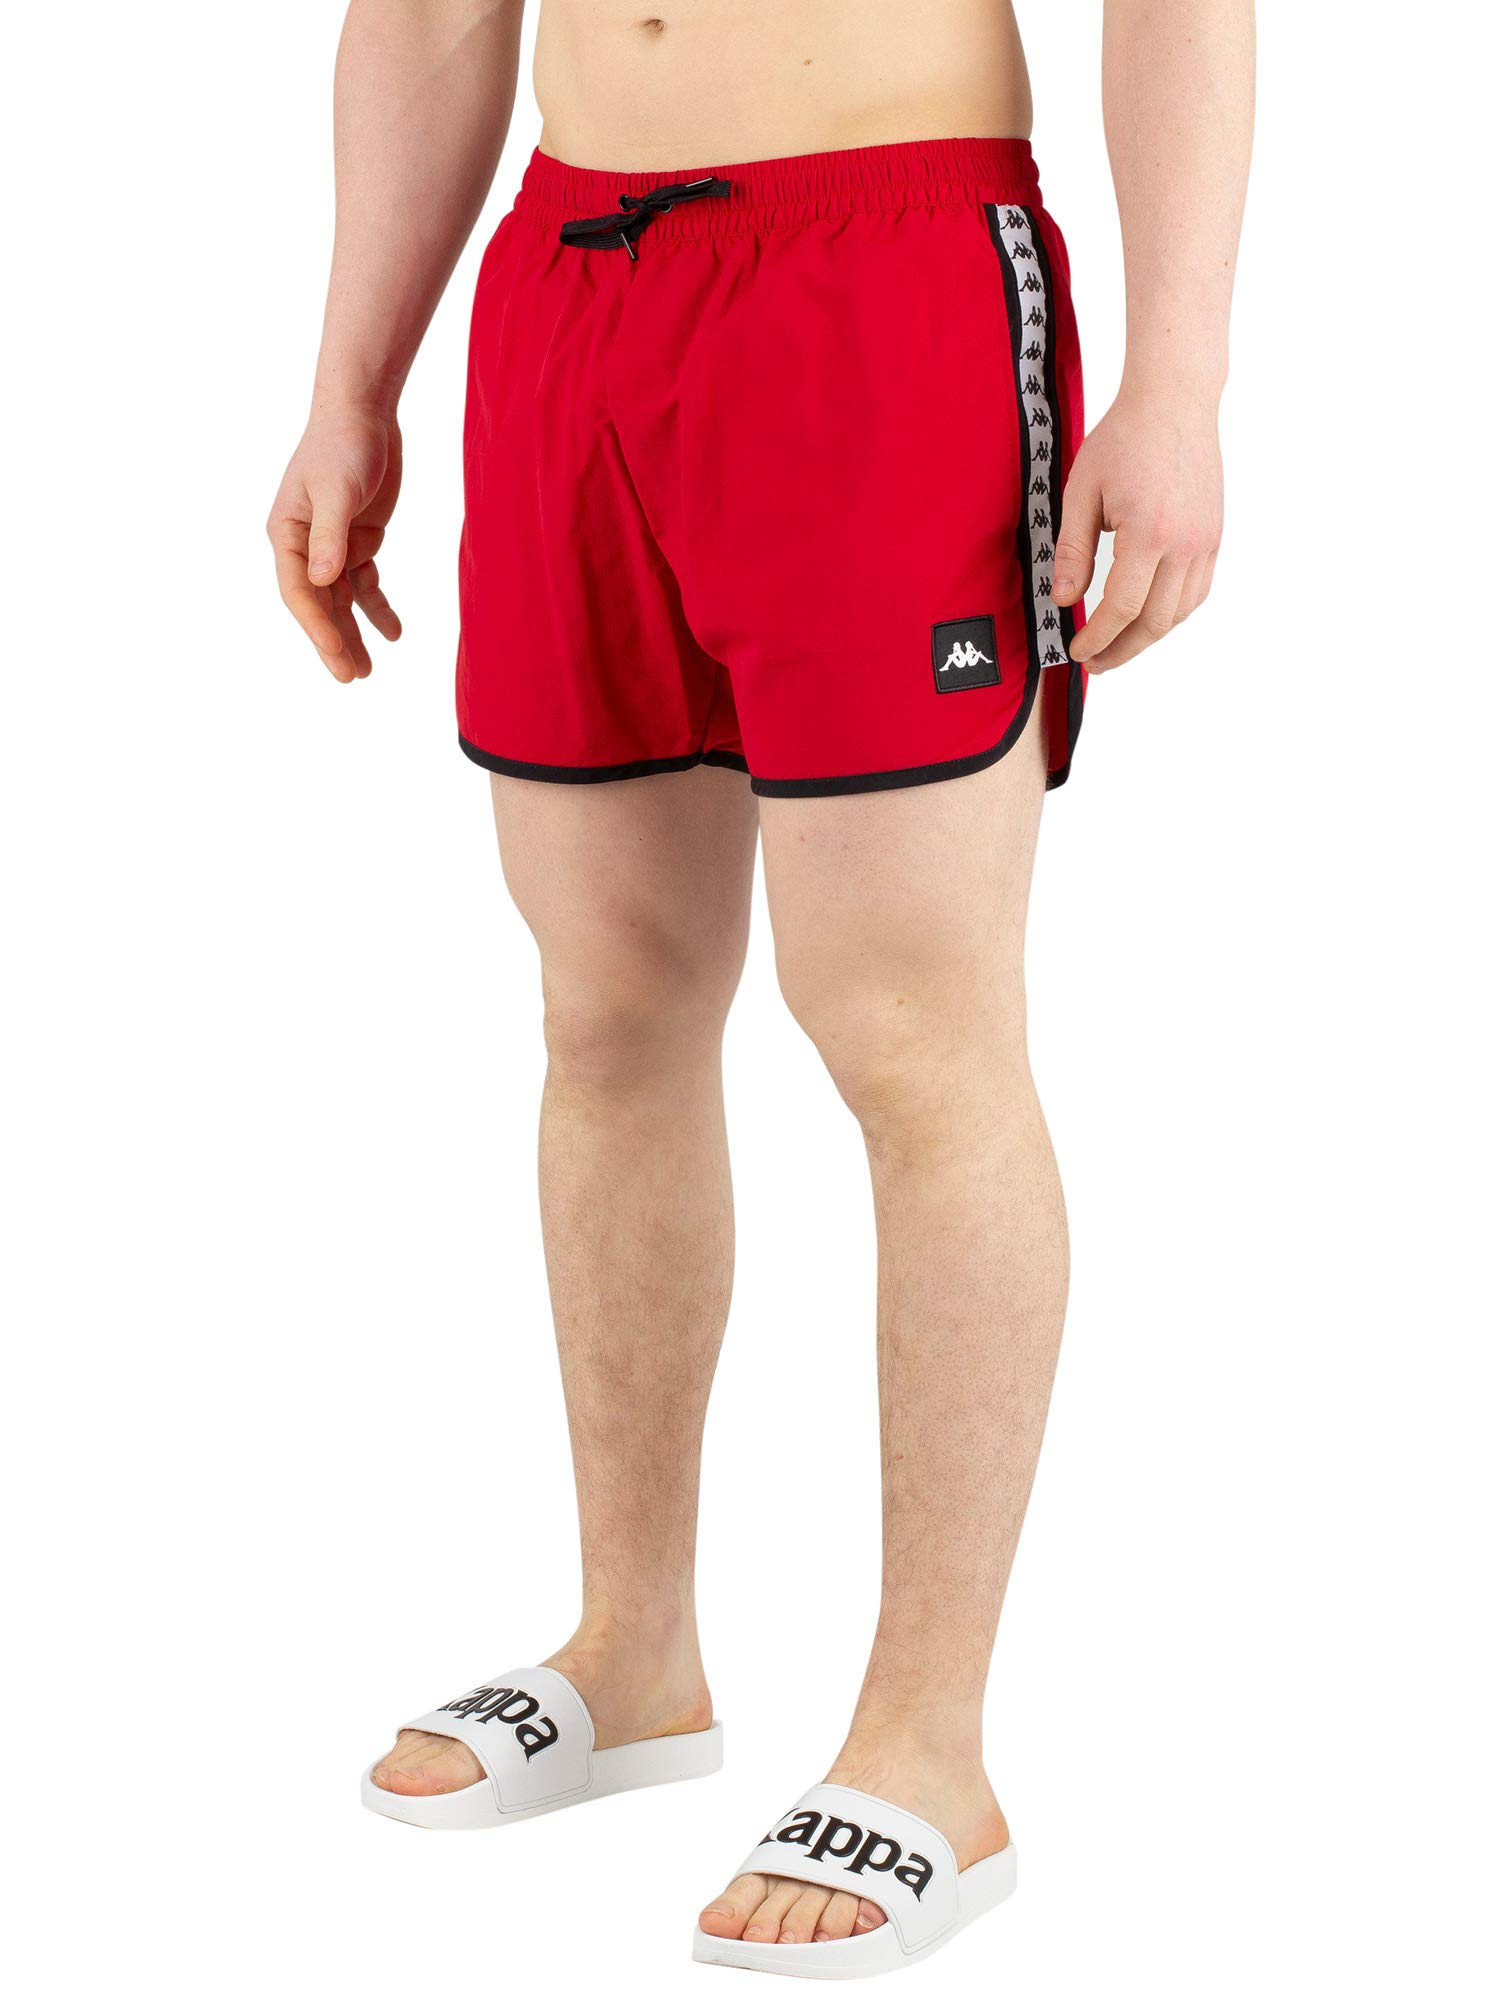 Kappa Authentic Agius Mens Swim Shorts in Red/White/Black